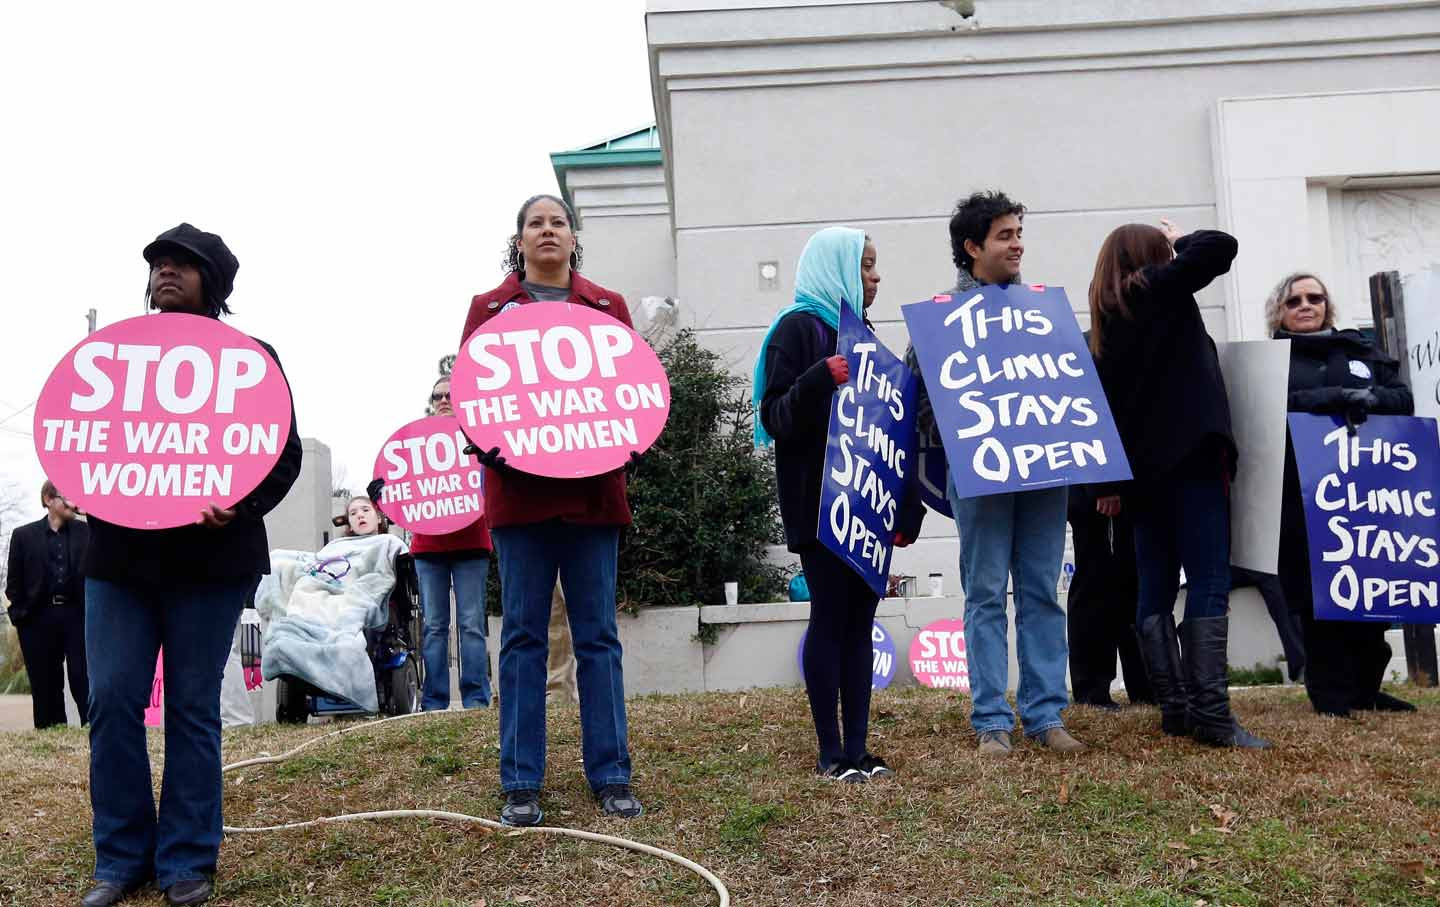 War_on_women_protest_ap_img